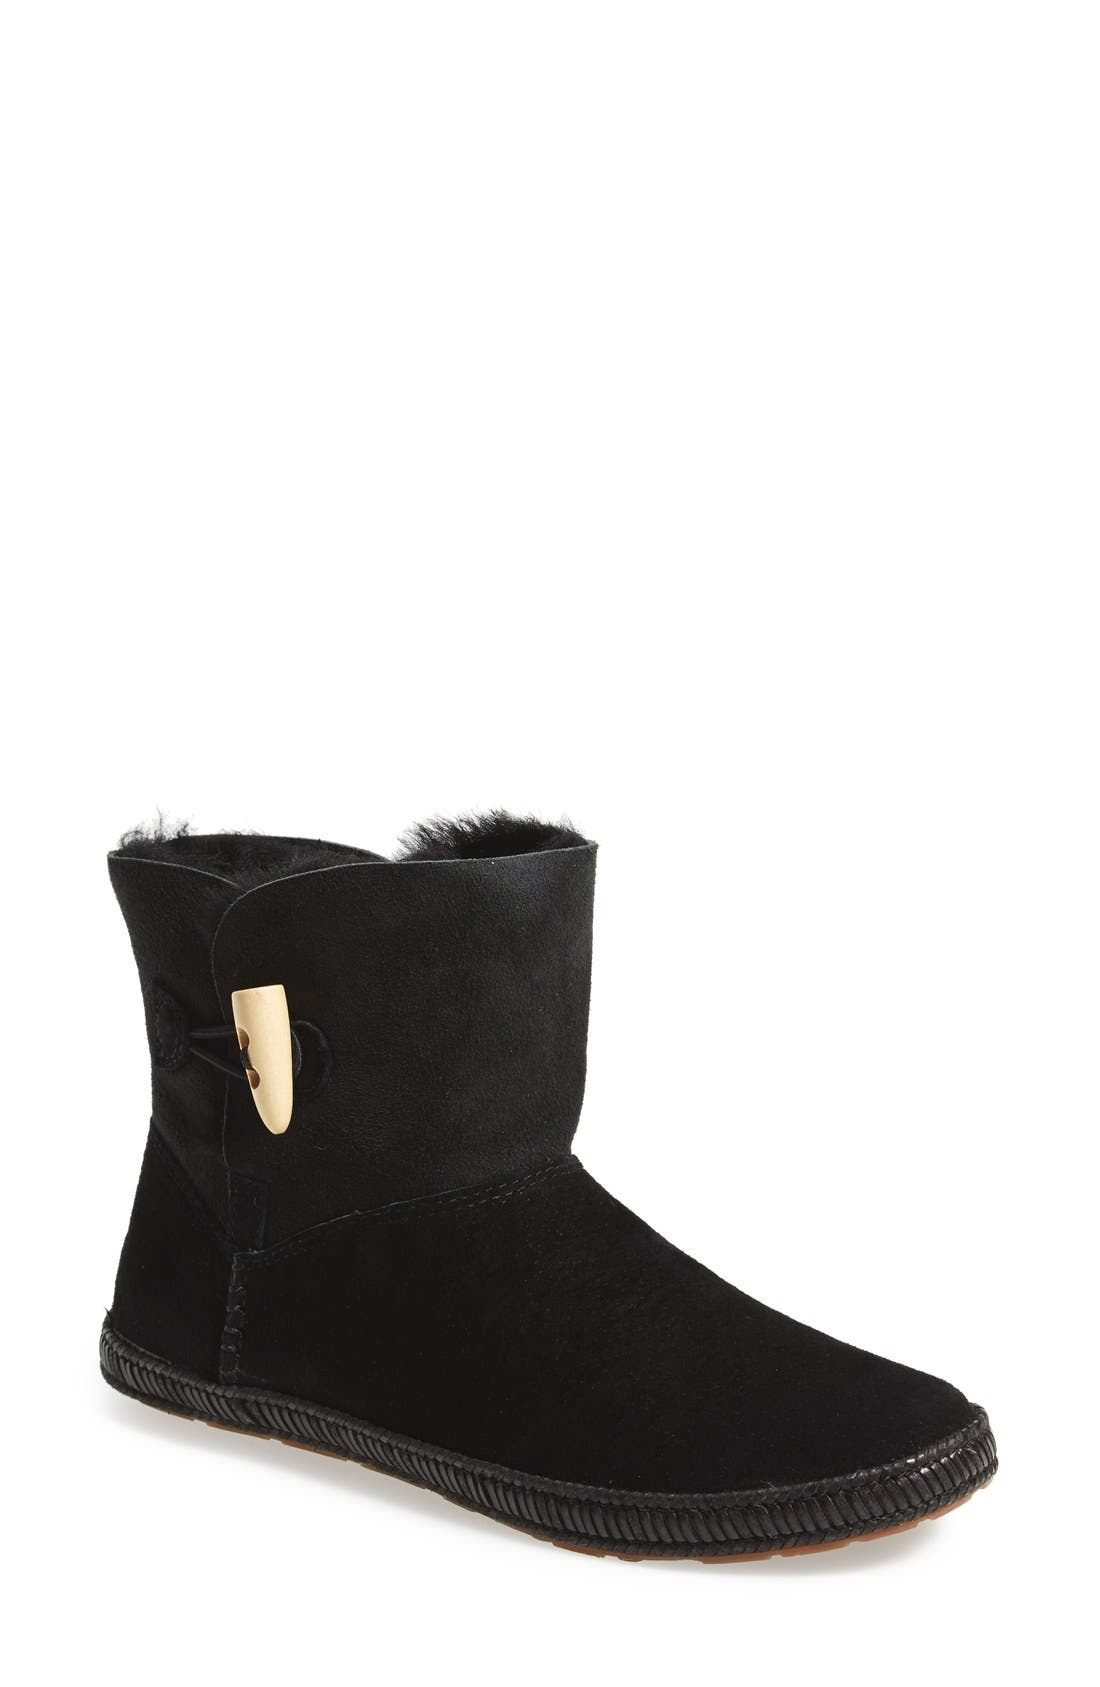 'Garnet' Toggle Boot,                             Main thumbnail 1, color,                             Black